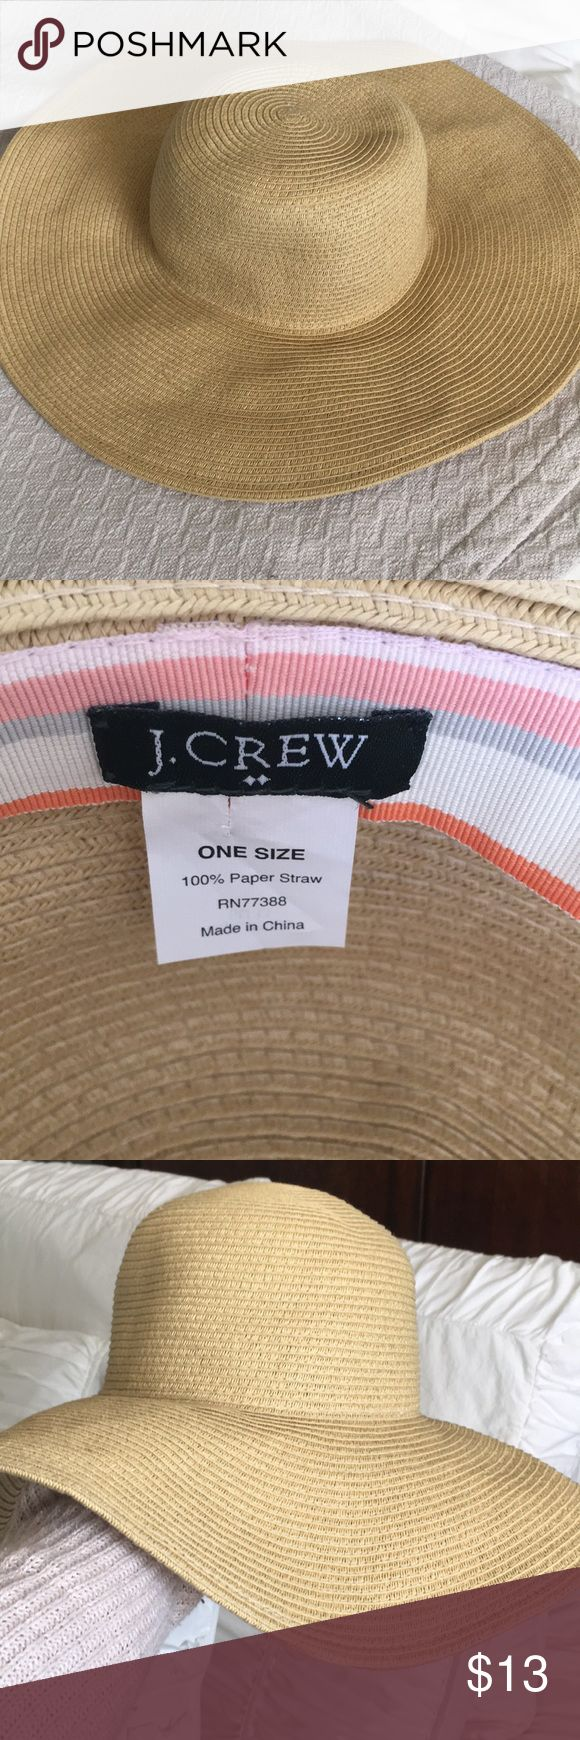 Jcrew factory floppy straw hat Jcrew Factory floppy straw hat. Only worn a few times on one trip, but sadly we don't live near a beach & it hasn't been worn since! Excellent condition. J. Crew Accessories Hats